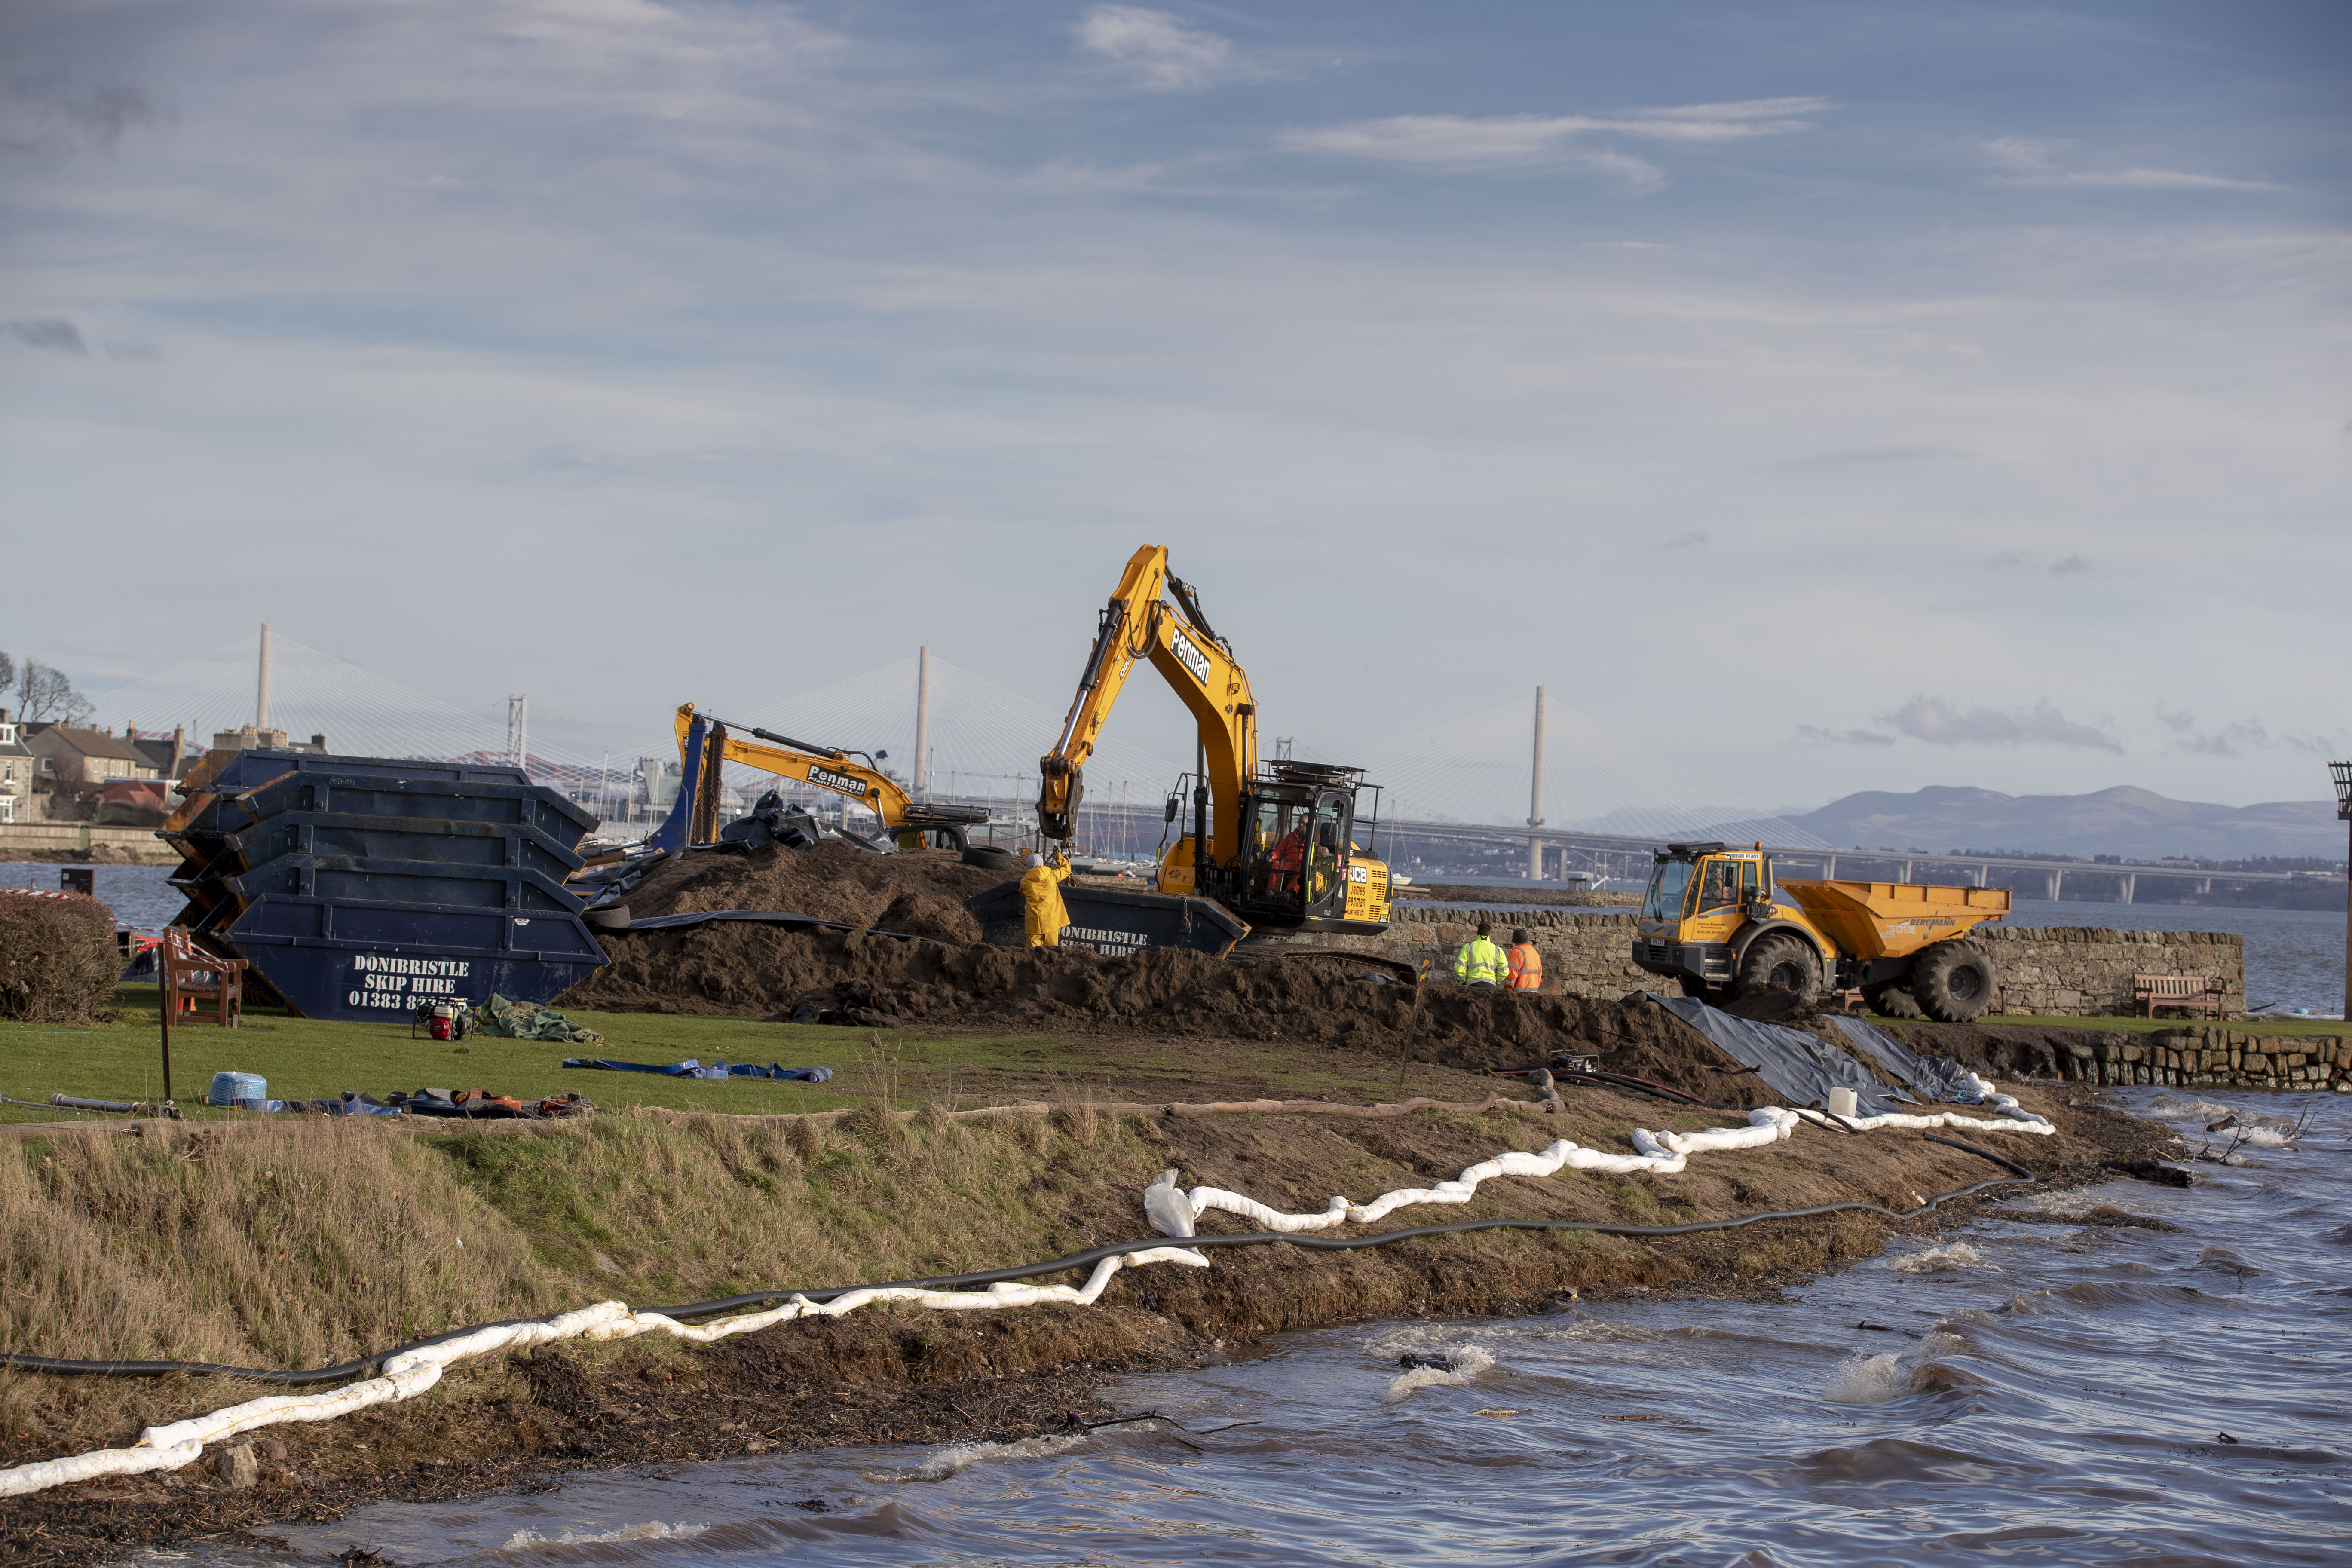 The clean up operation at Limekilns following the discovery of contamination on the local beach.